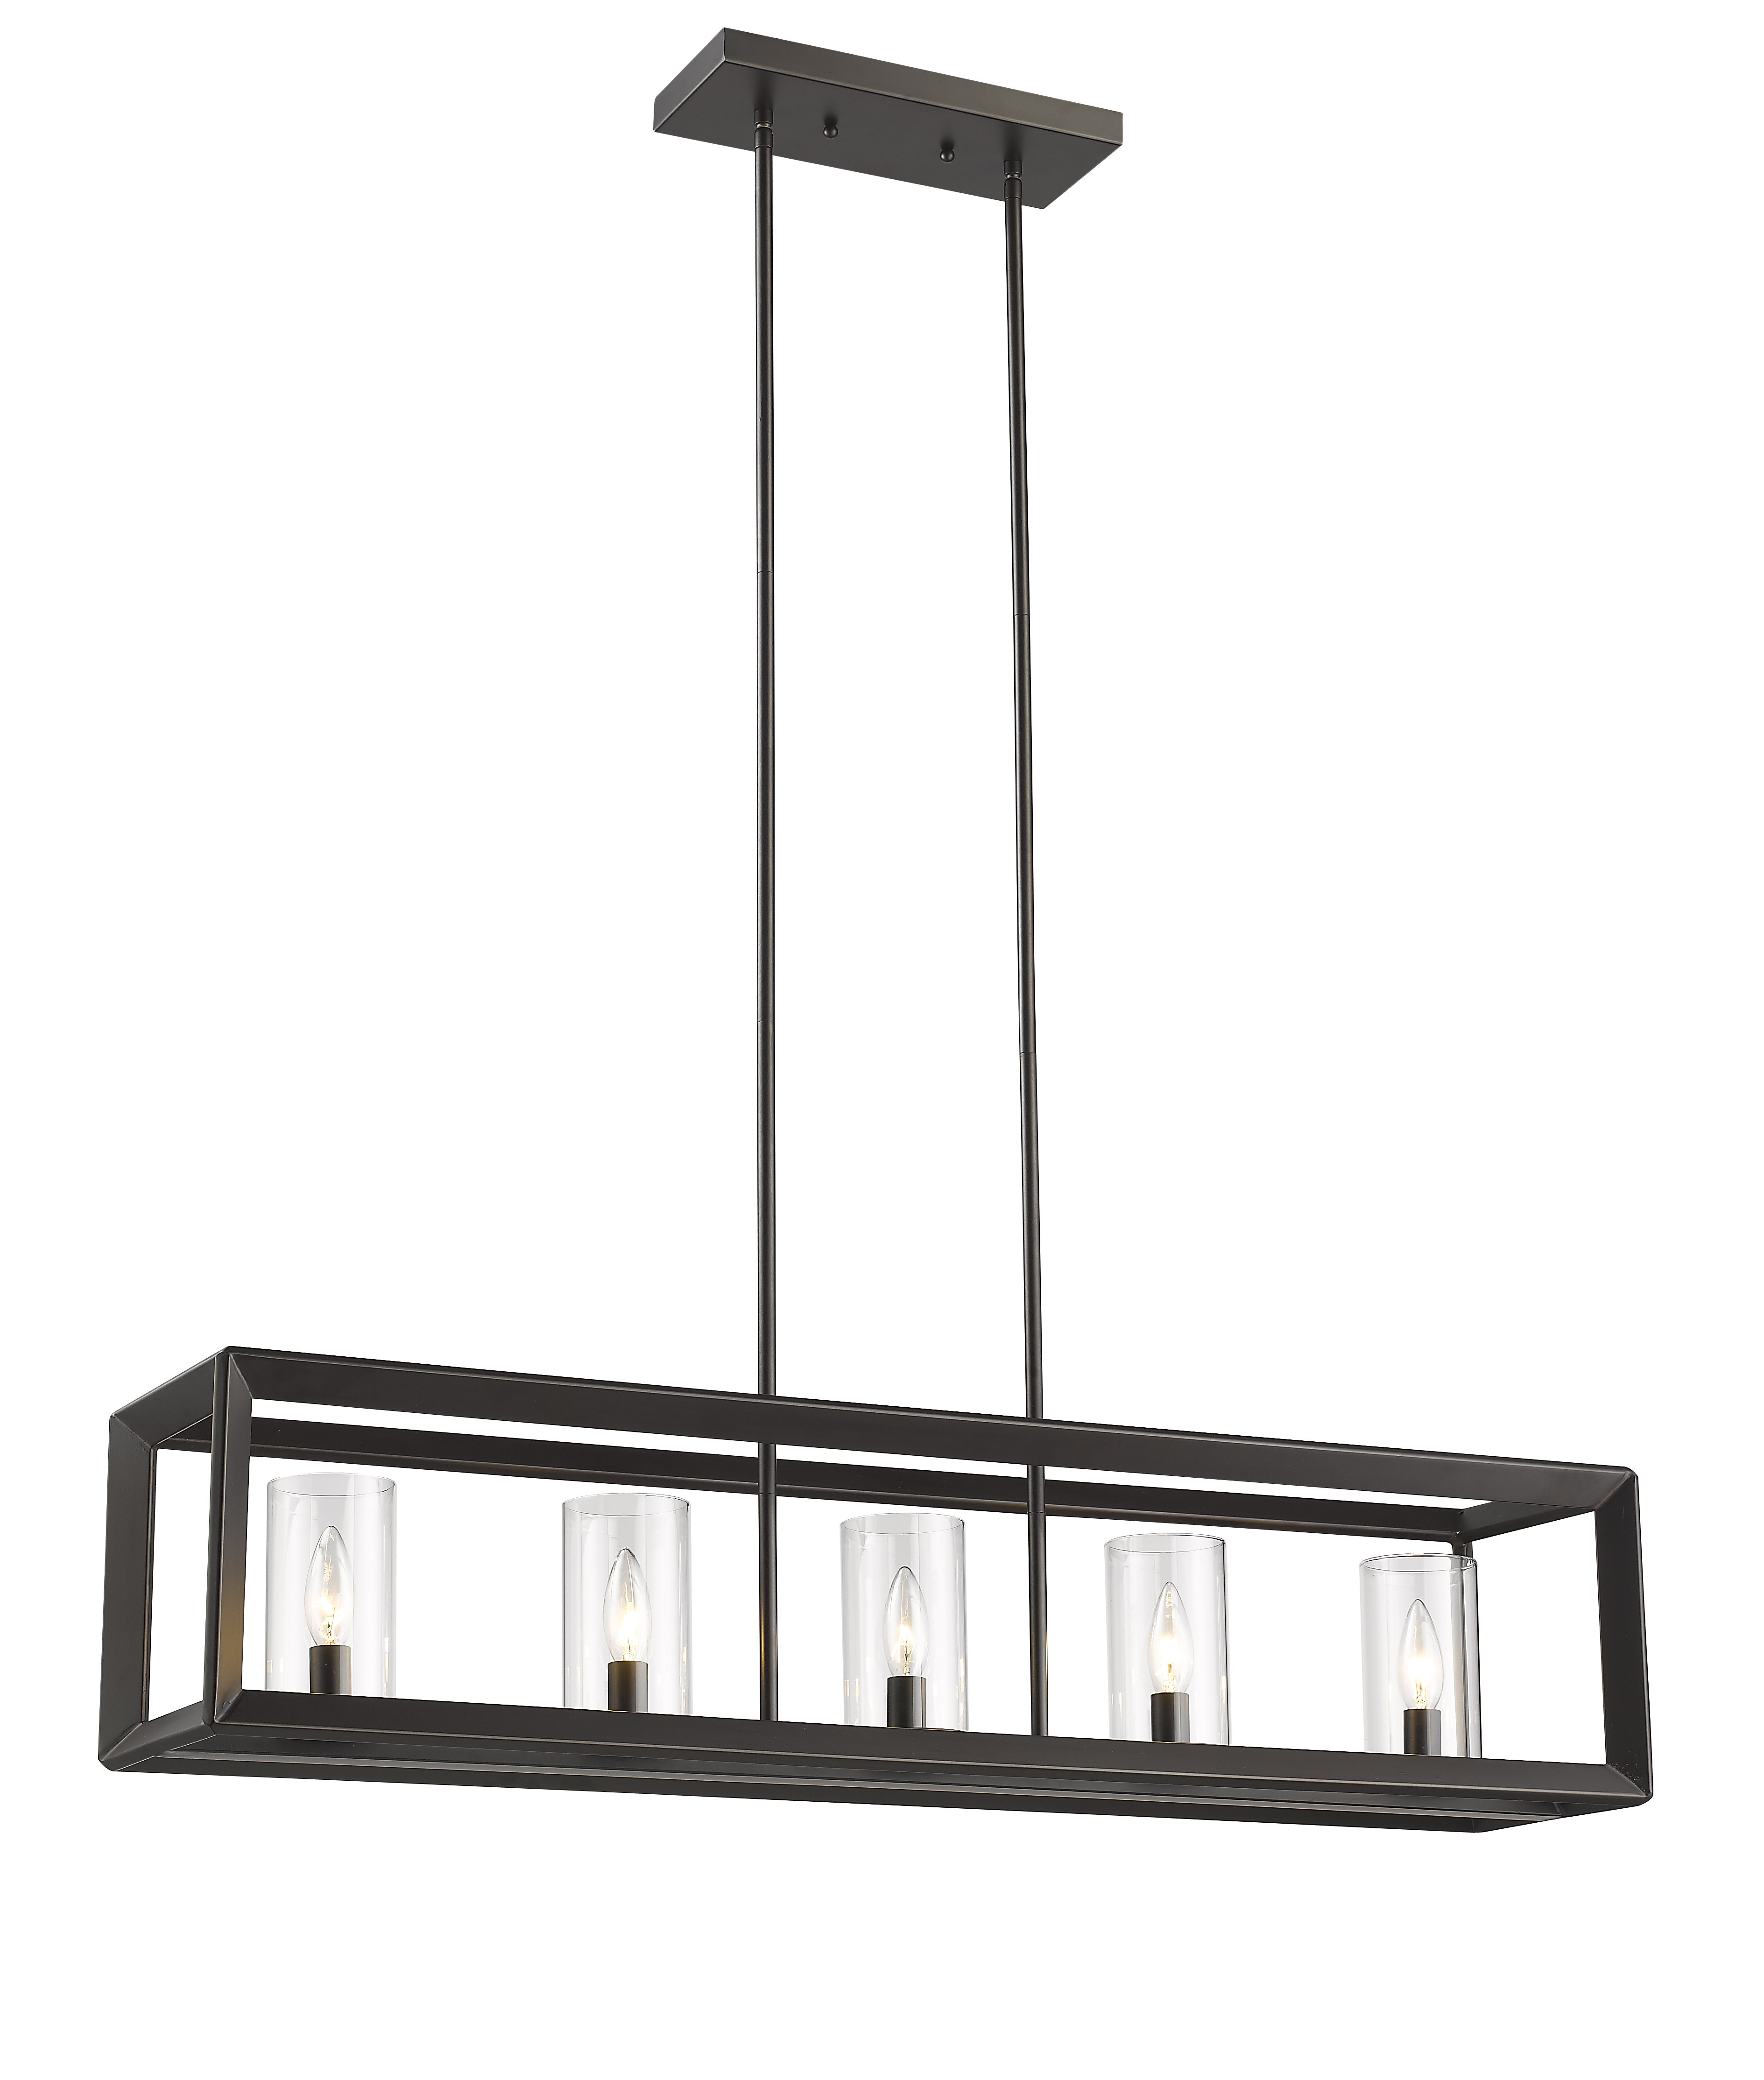 Delon 5 Light Kitchen Island Linear Pendants Within Most Up To Date Farmhouse / Country Kitchen Island Pendants (View 9 of 20)